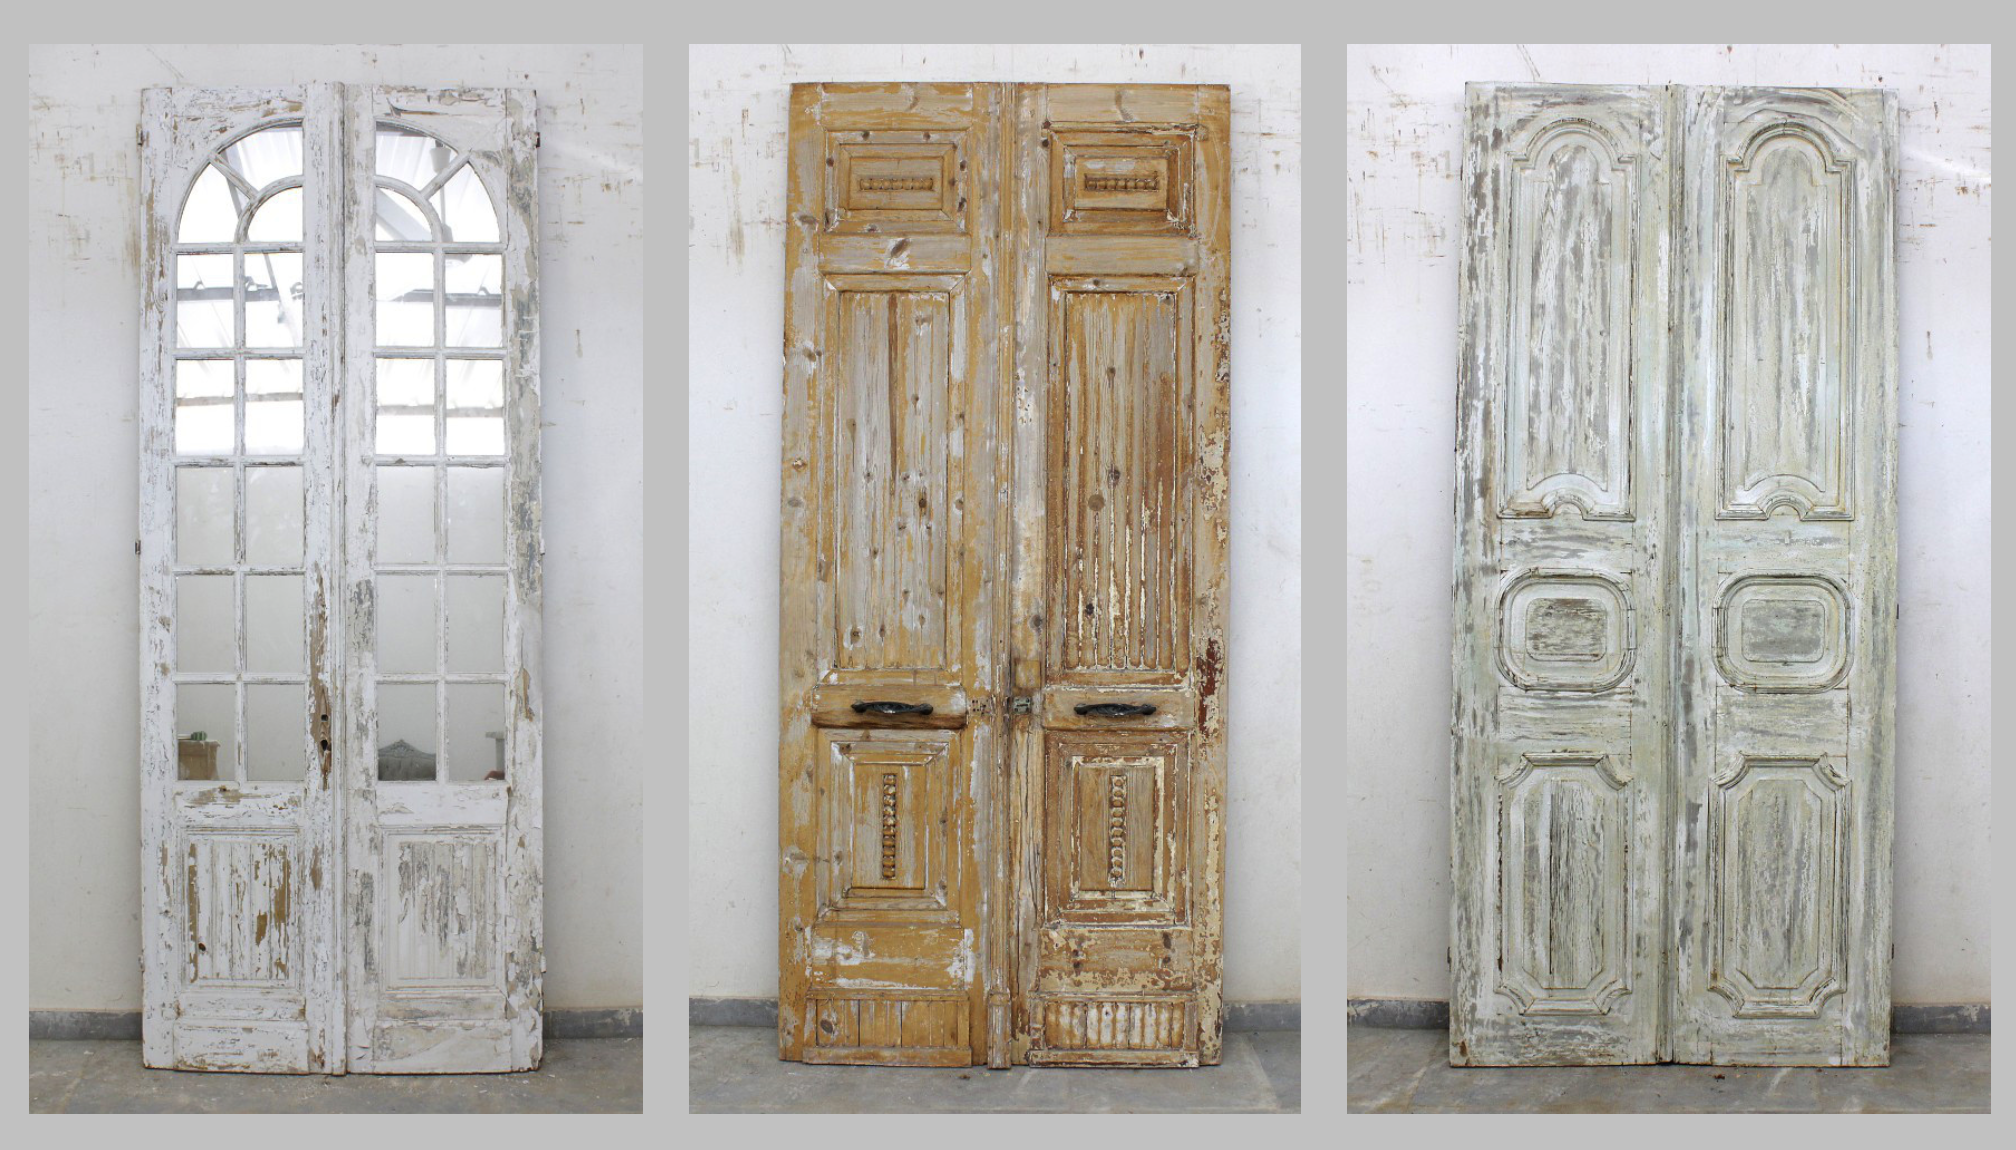 Vintage french doors imported from Europe